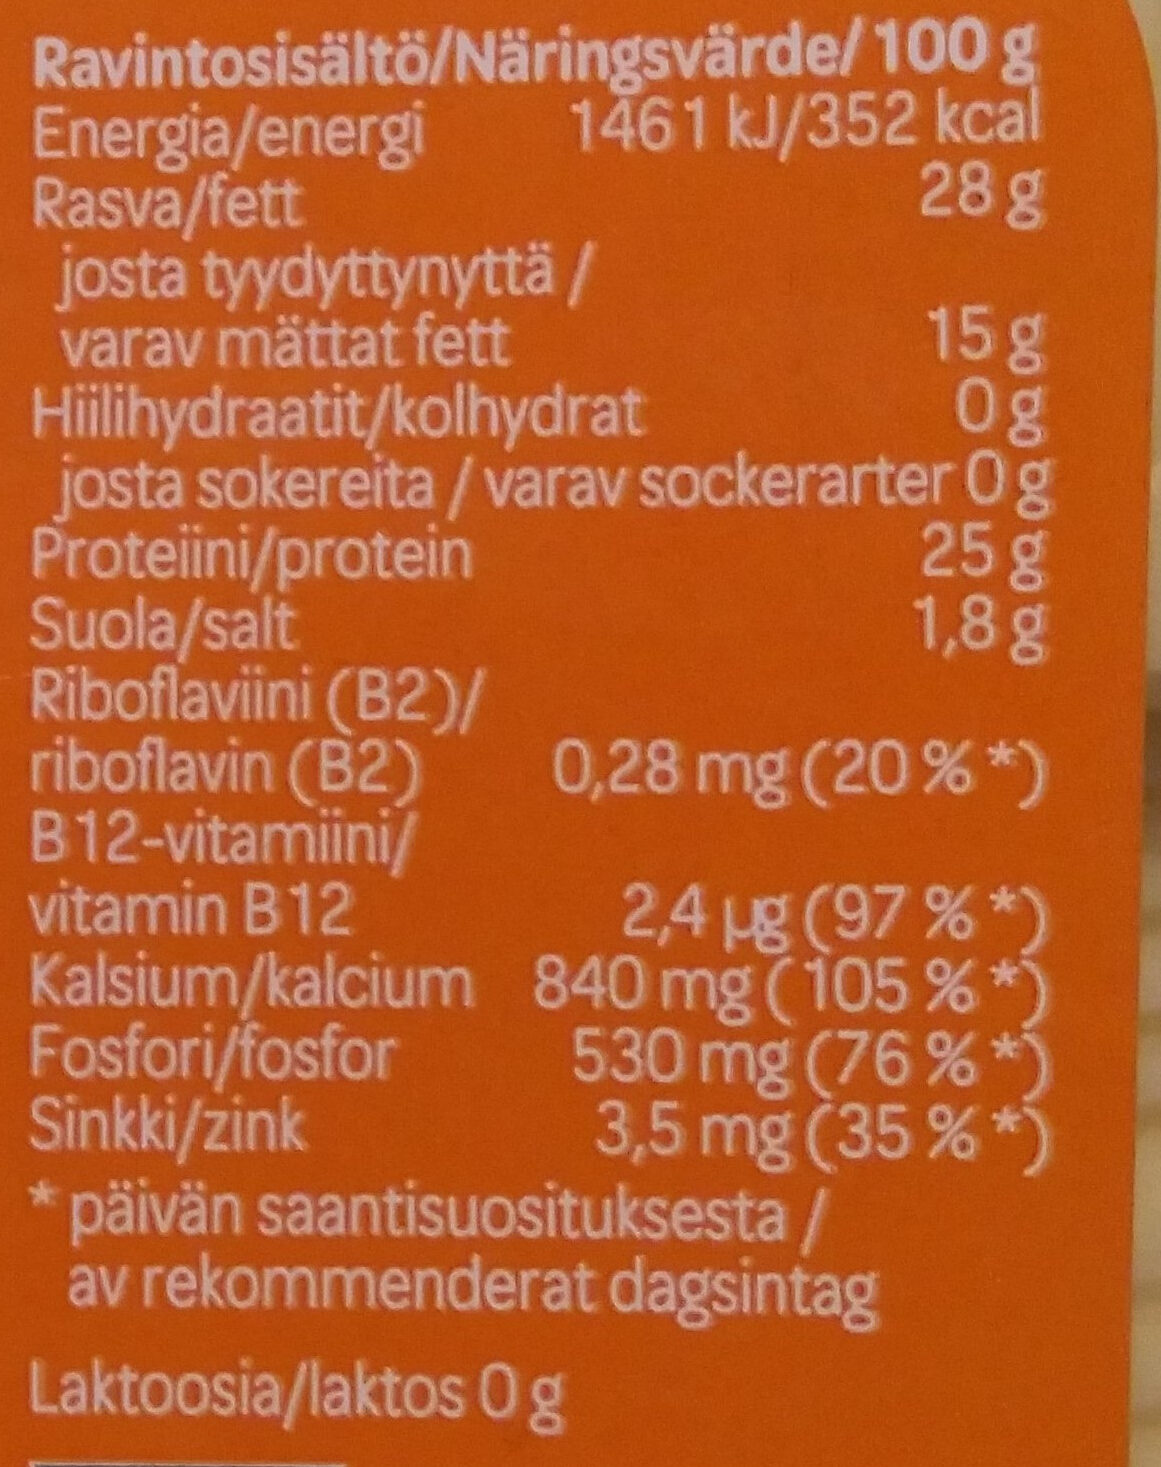 Luomu Gouda-juusto - Nutrition facts - fi